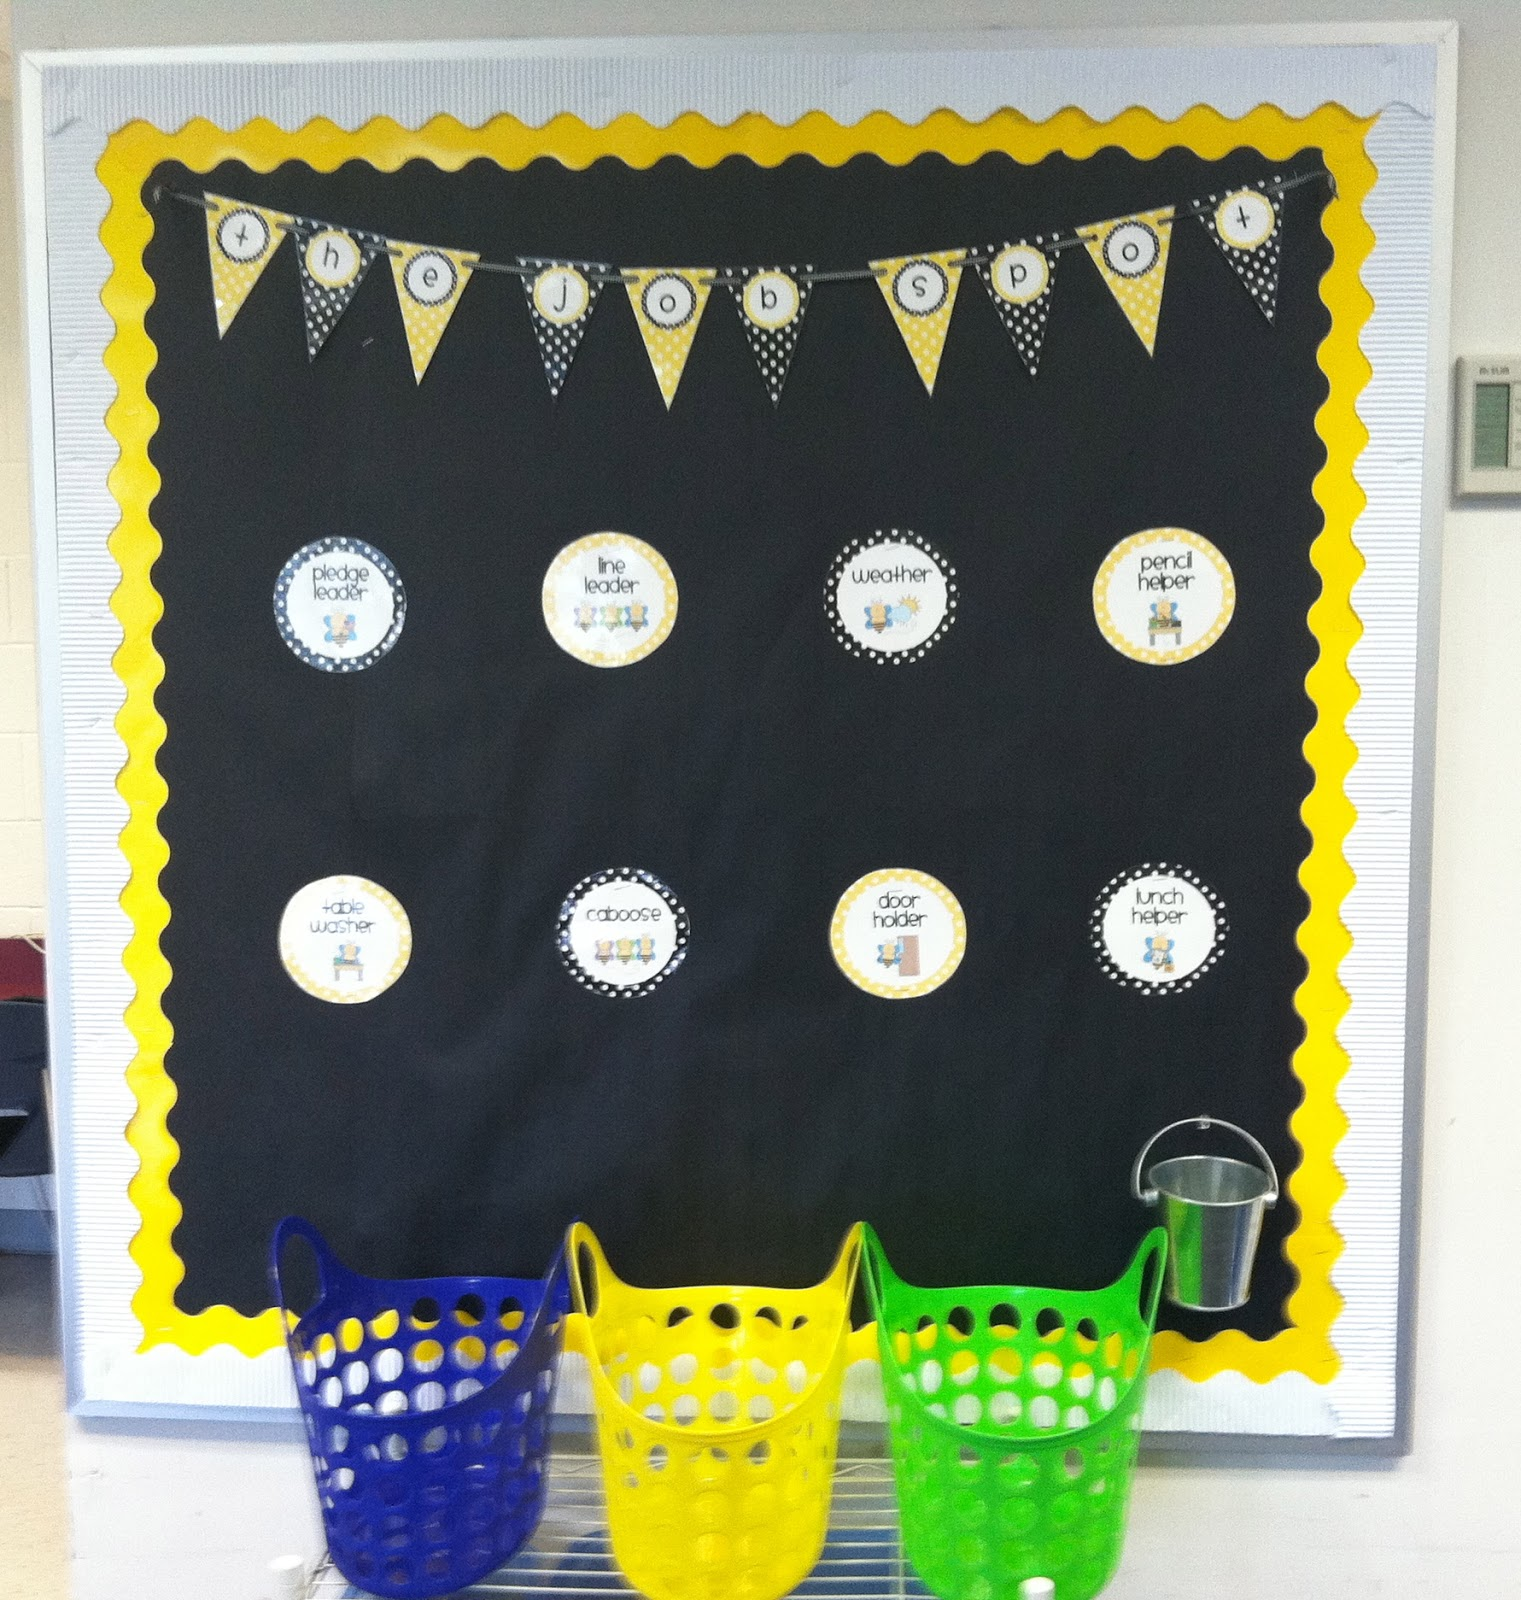 This Is My Class Job Bulletin Board Since The Pennant Banner Was Already Yellow And Black I Decided To Go With A Bee Theme For